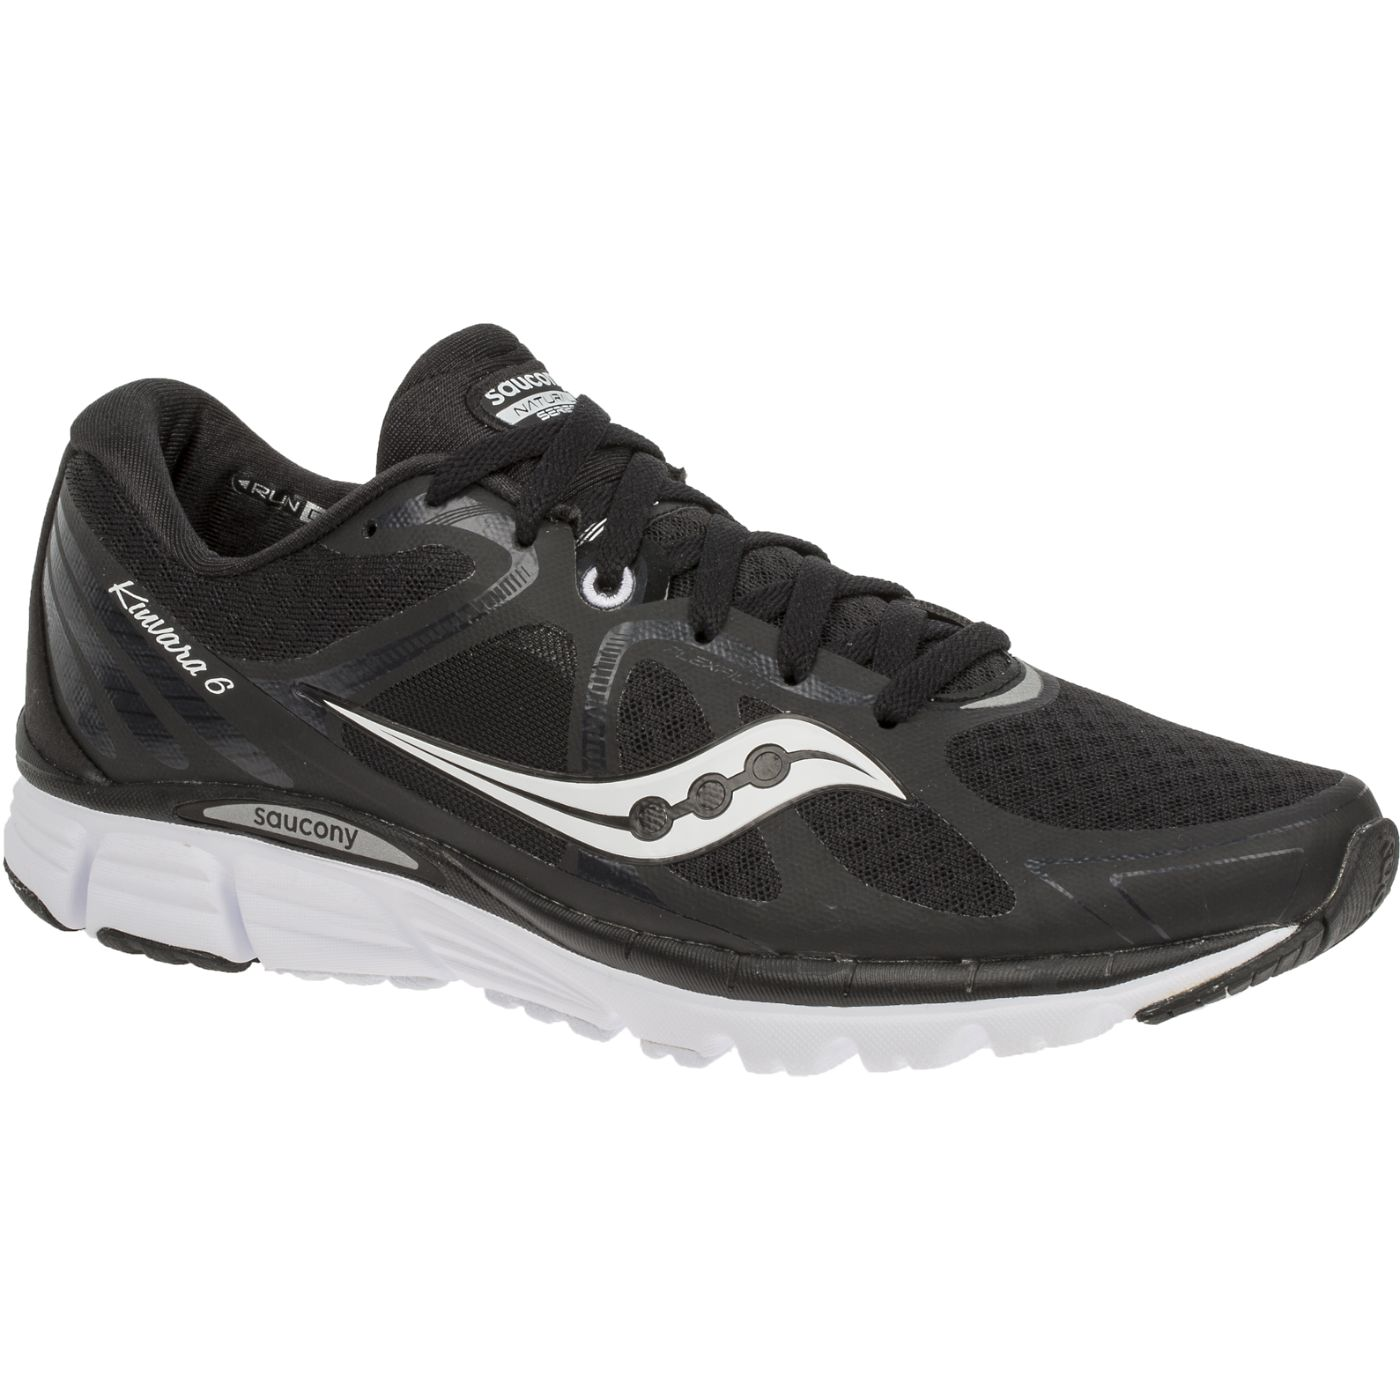 Saucony Women's Kinvara 6 Road Running Shoe, Black/White, 7 M US